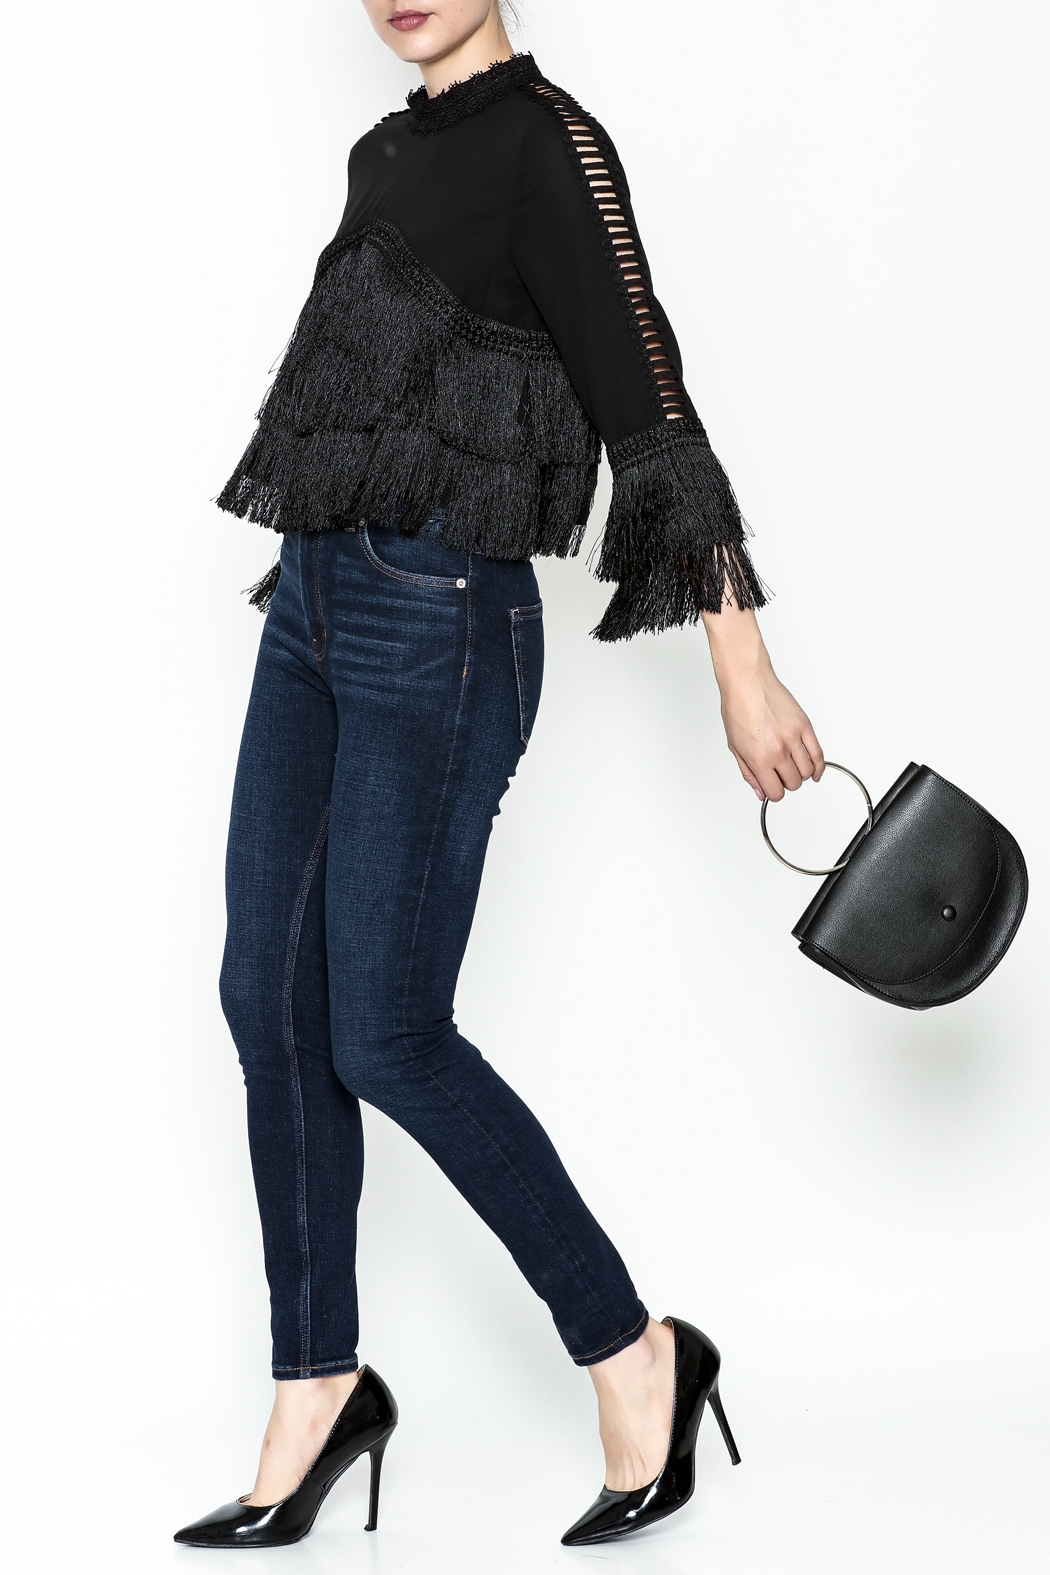 Gracia Layered Fringe Top - Side Cropped Image